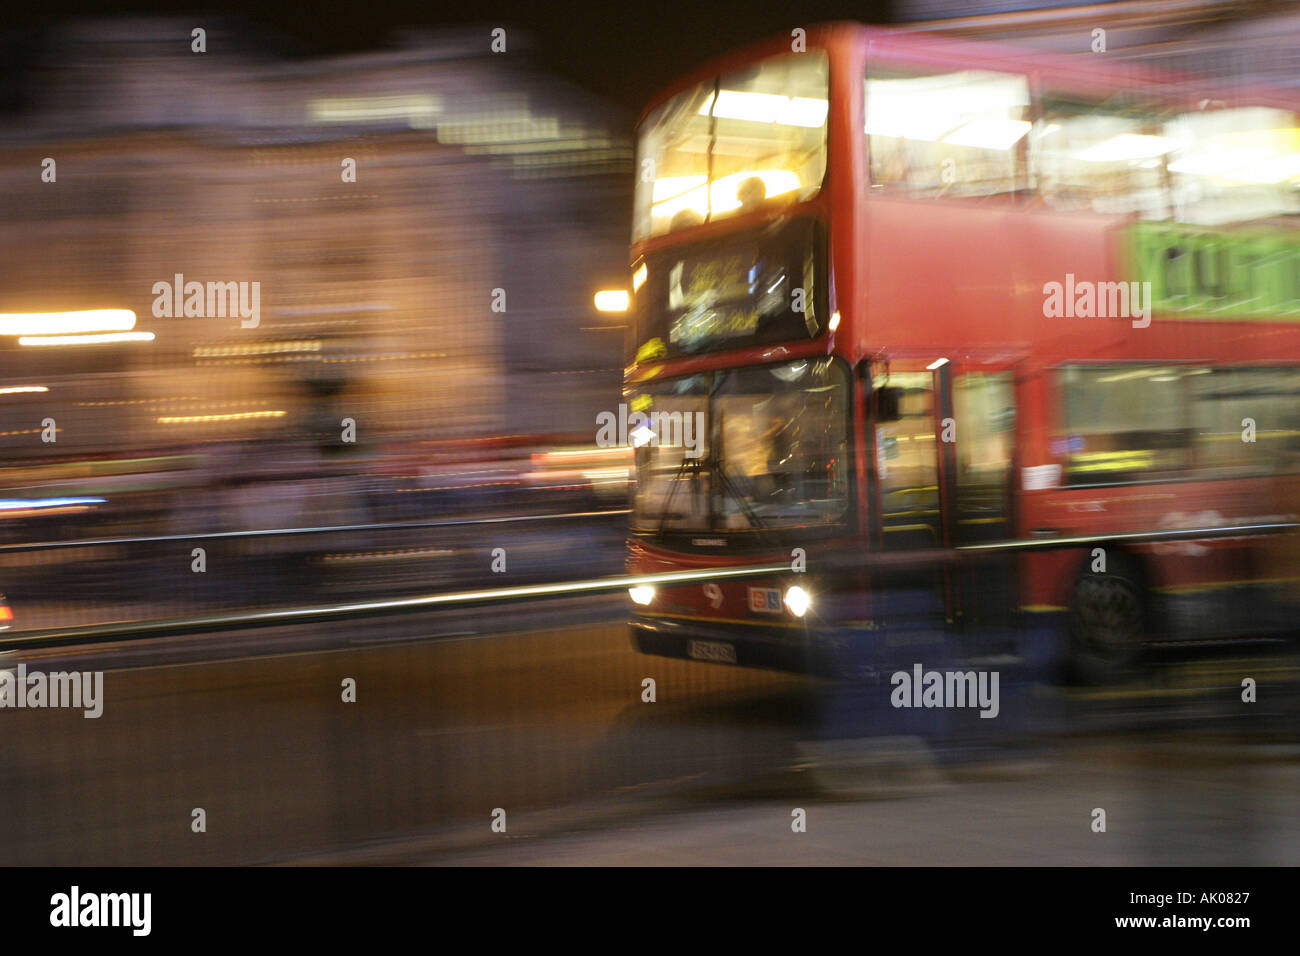 Red London Bus at Night - Stock Image